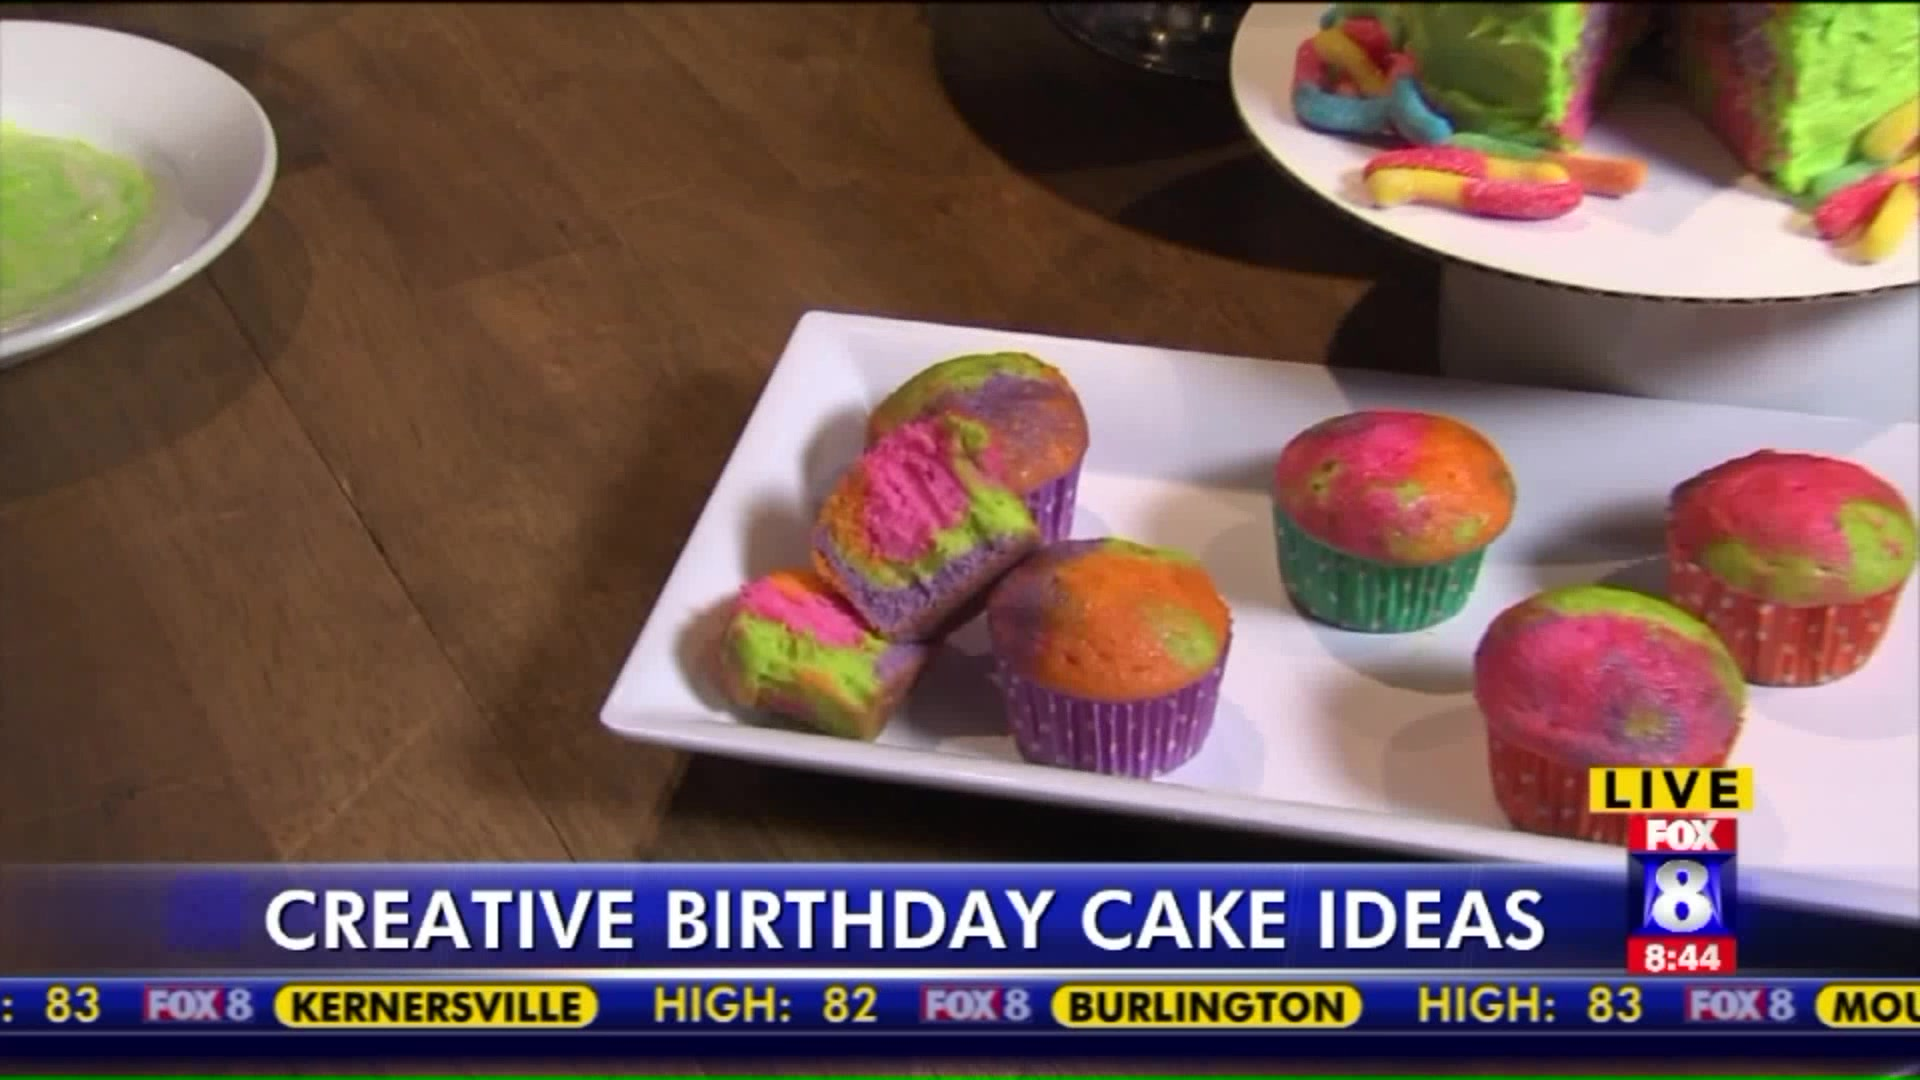 How to Make a Tie-Dye Cupcakes